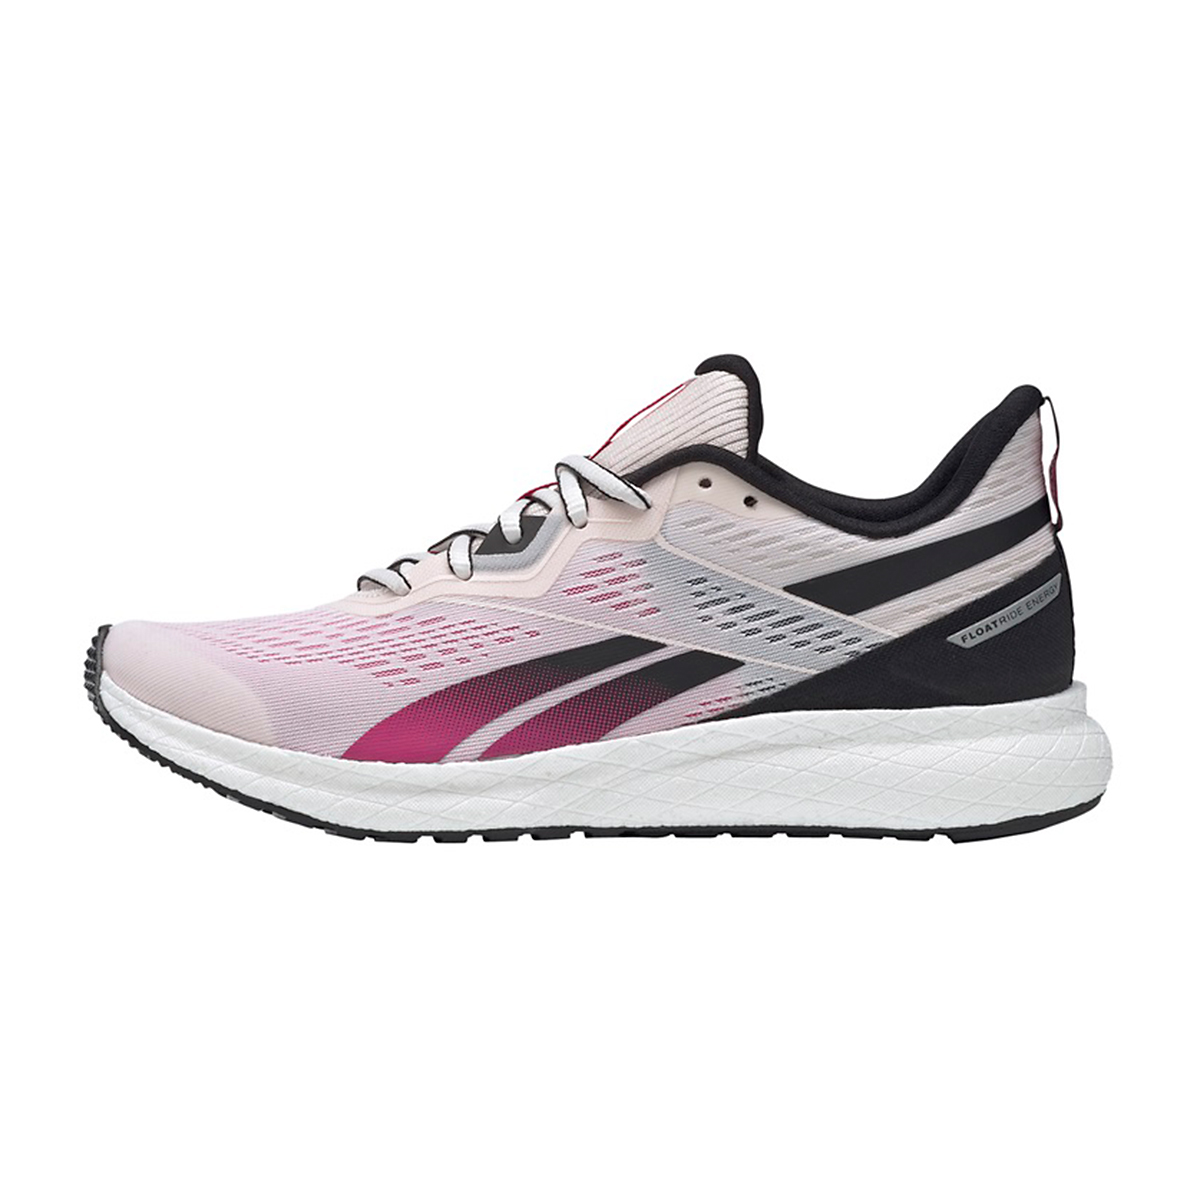 Women's Reebok Forever Floatride Energy 2.0 Running Shoe - Color: Glass Pink/Black/Proud Pink - Size: 5 - Width: Regular, Glass Pink/Black/Proud Pink, large, image 2